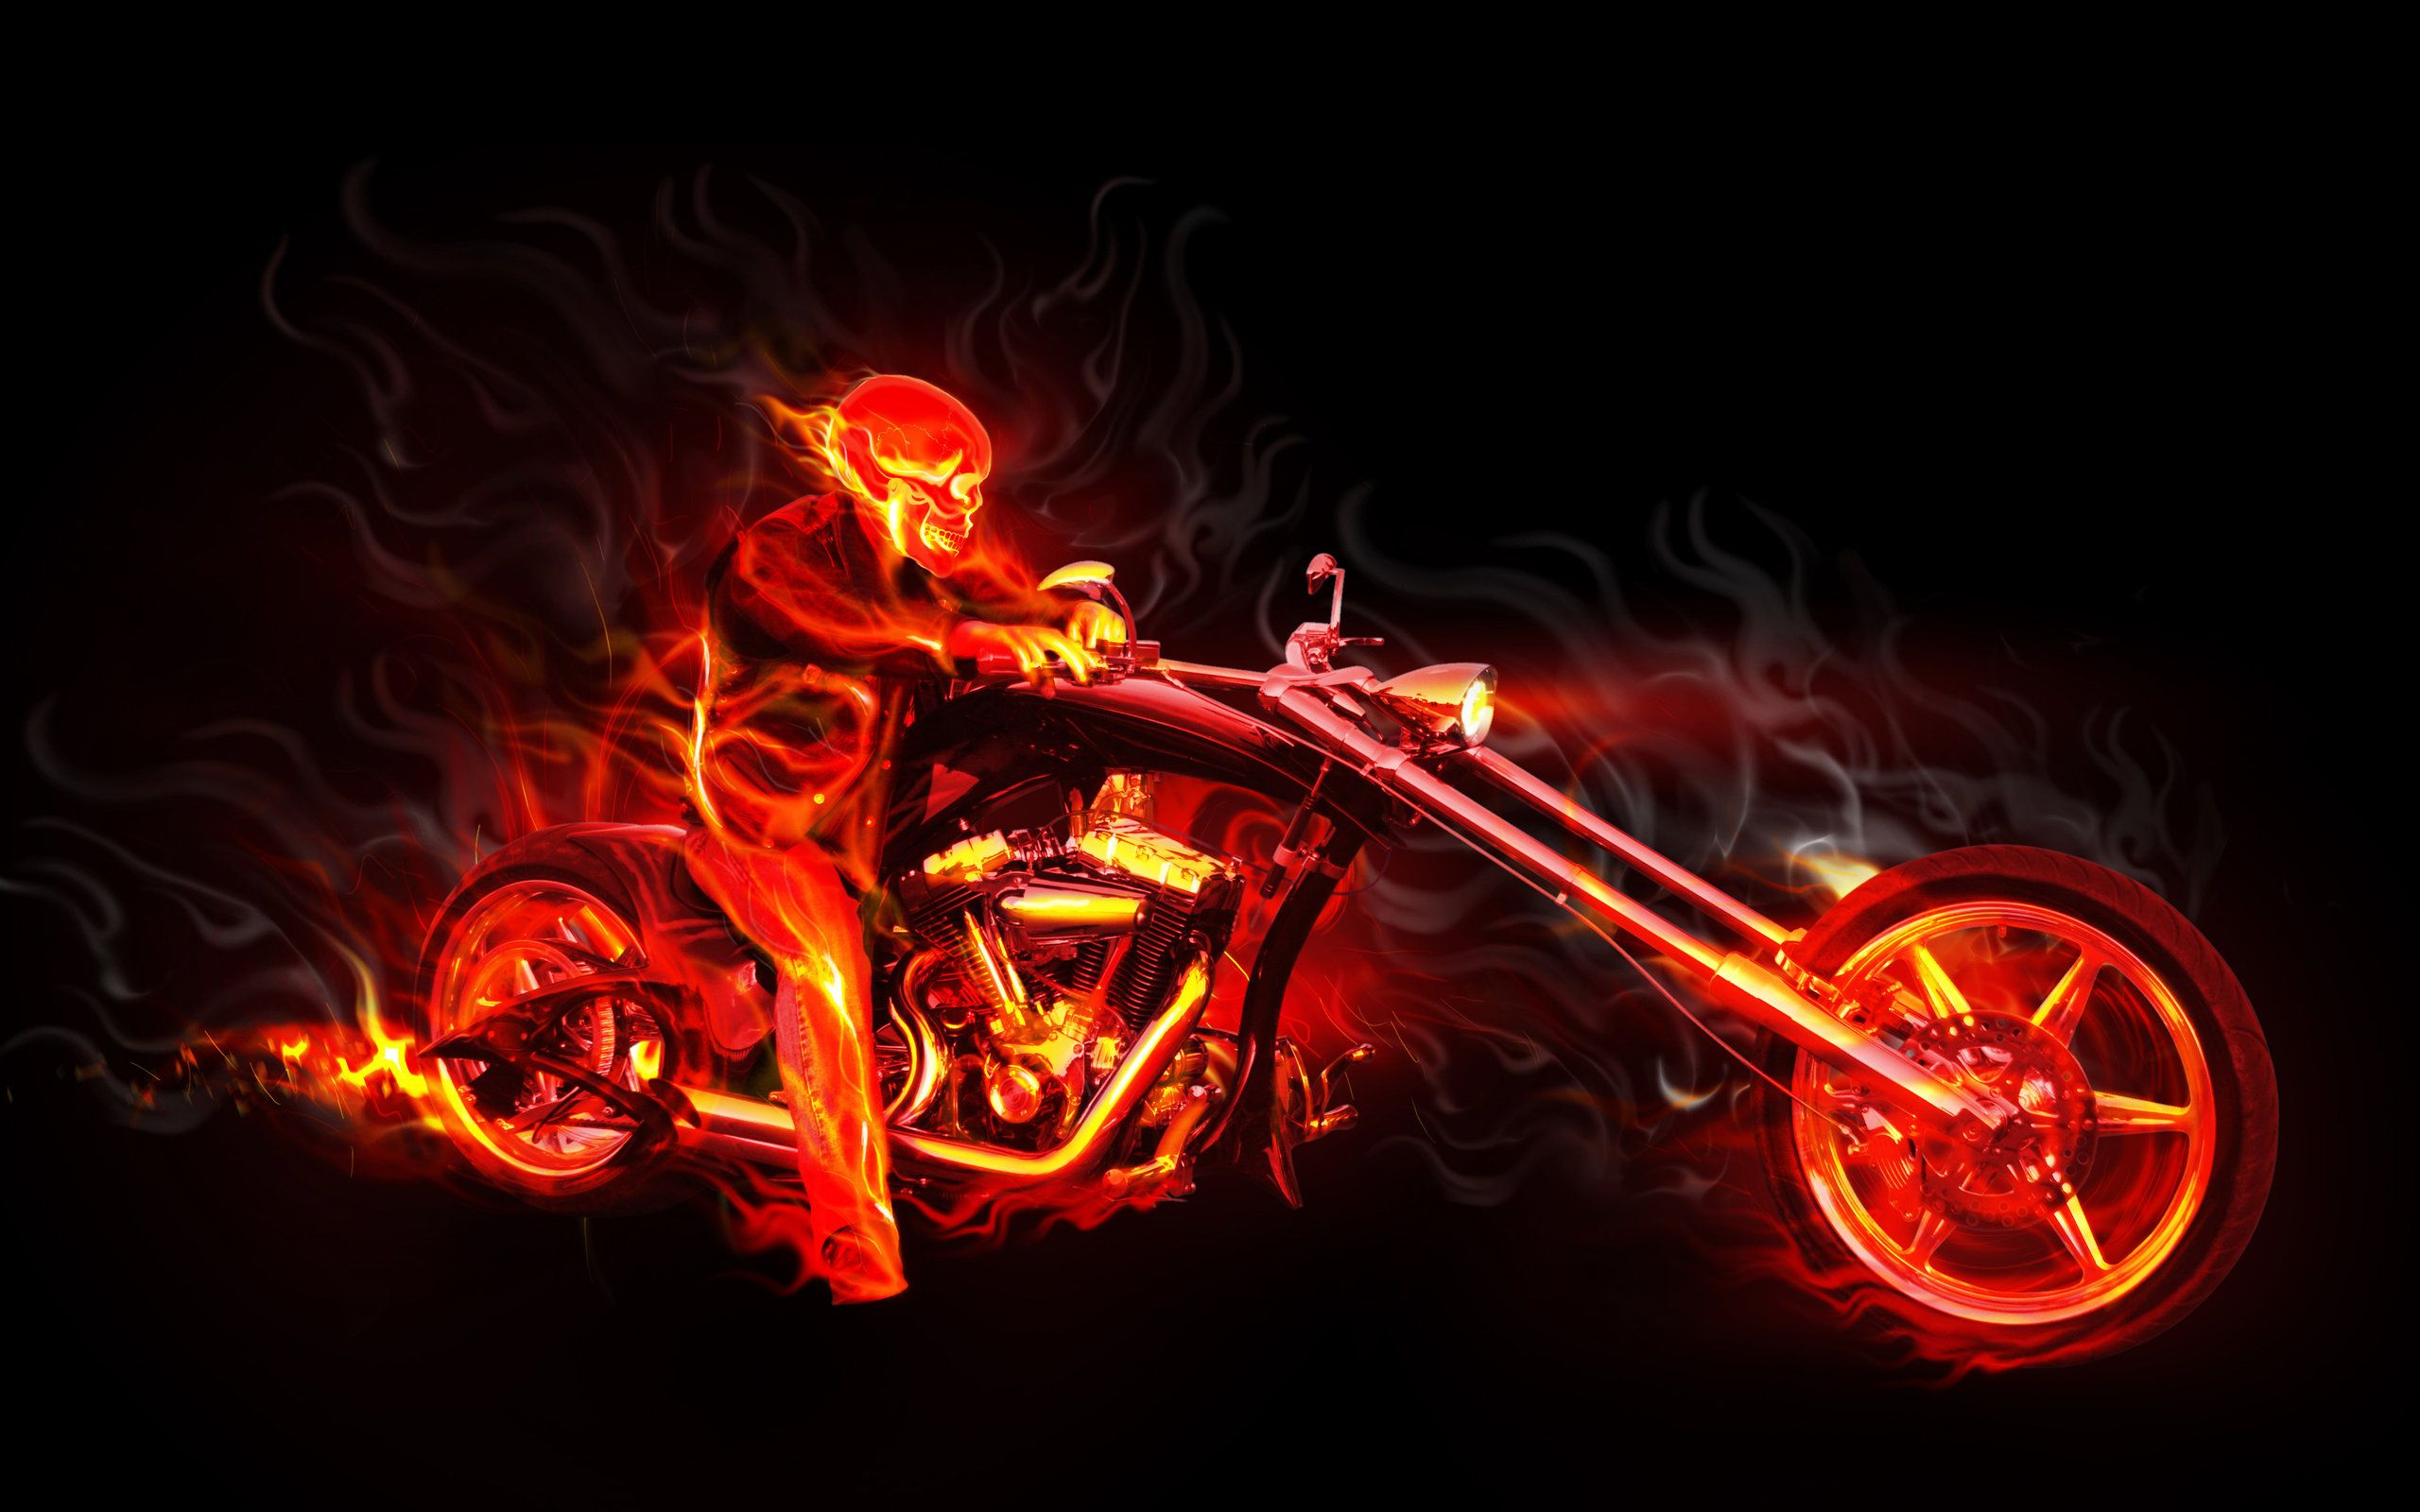 Fire and ice fractal abstract wallpaper hd wallpapers - High Quality Hd 3d Wallpaper Fire Harley Man Abstract Photo